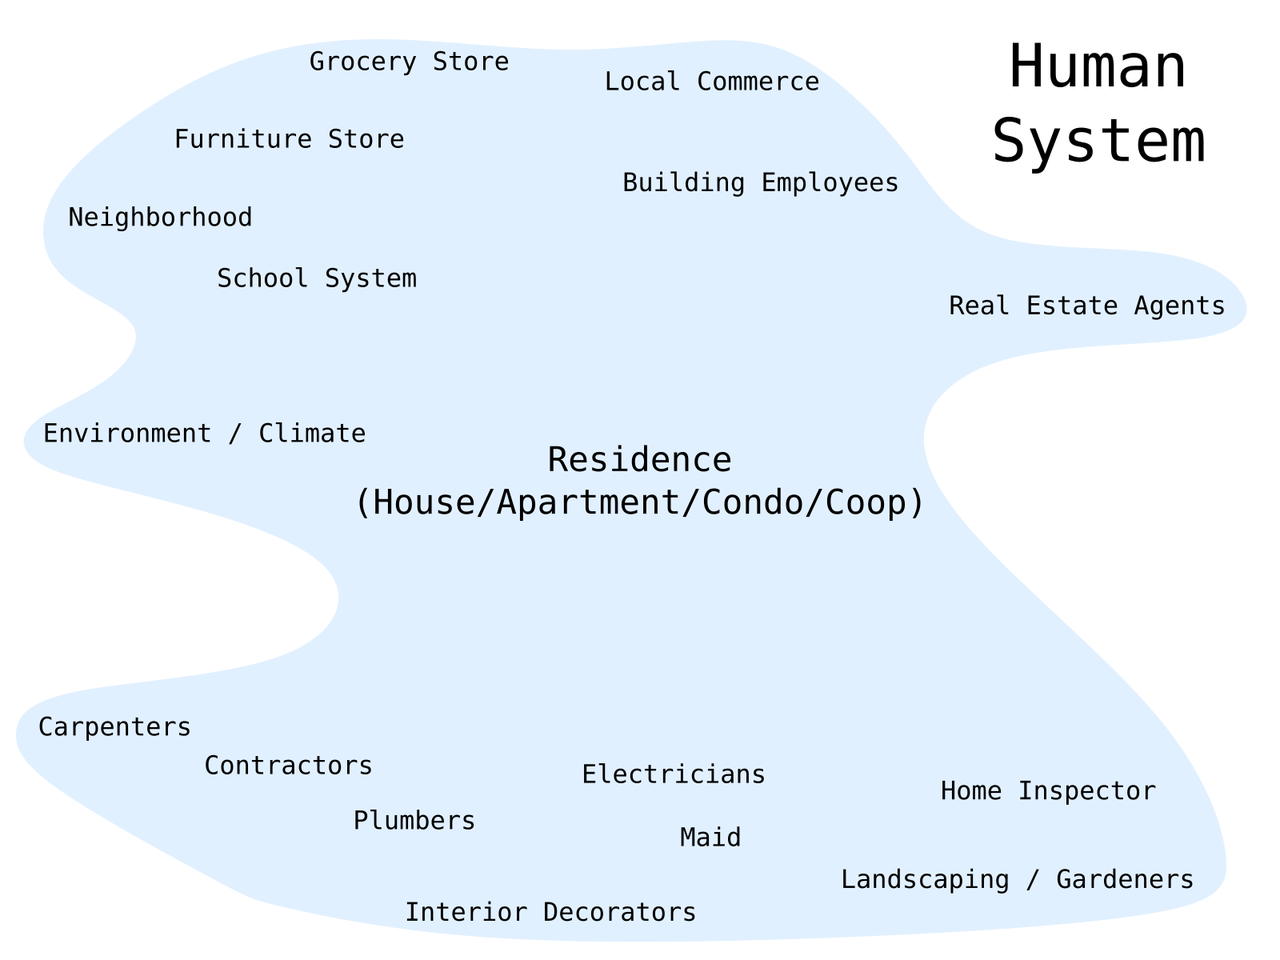 /images/itp/temporary_expert/week1/system_map_human.png